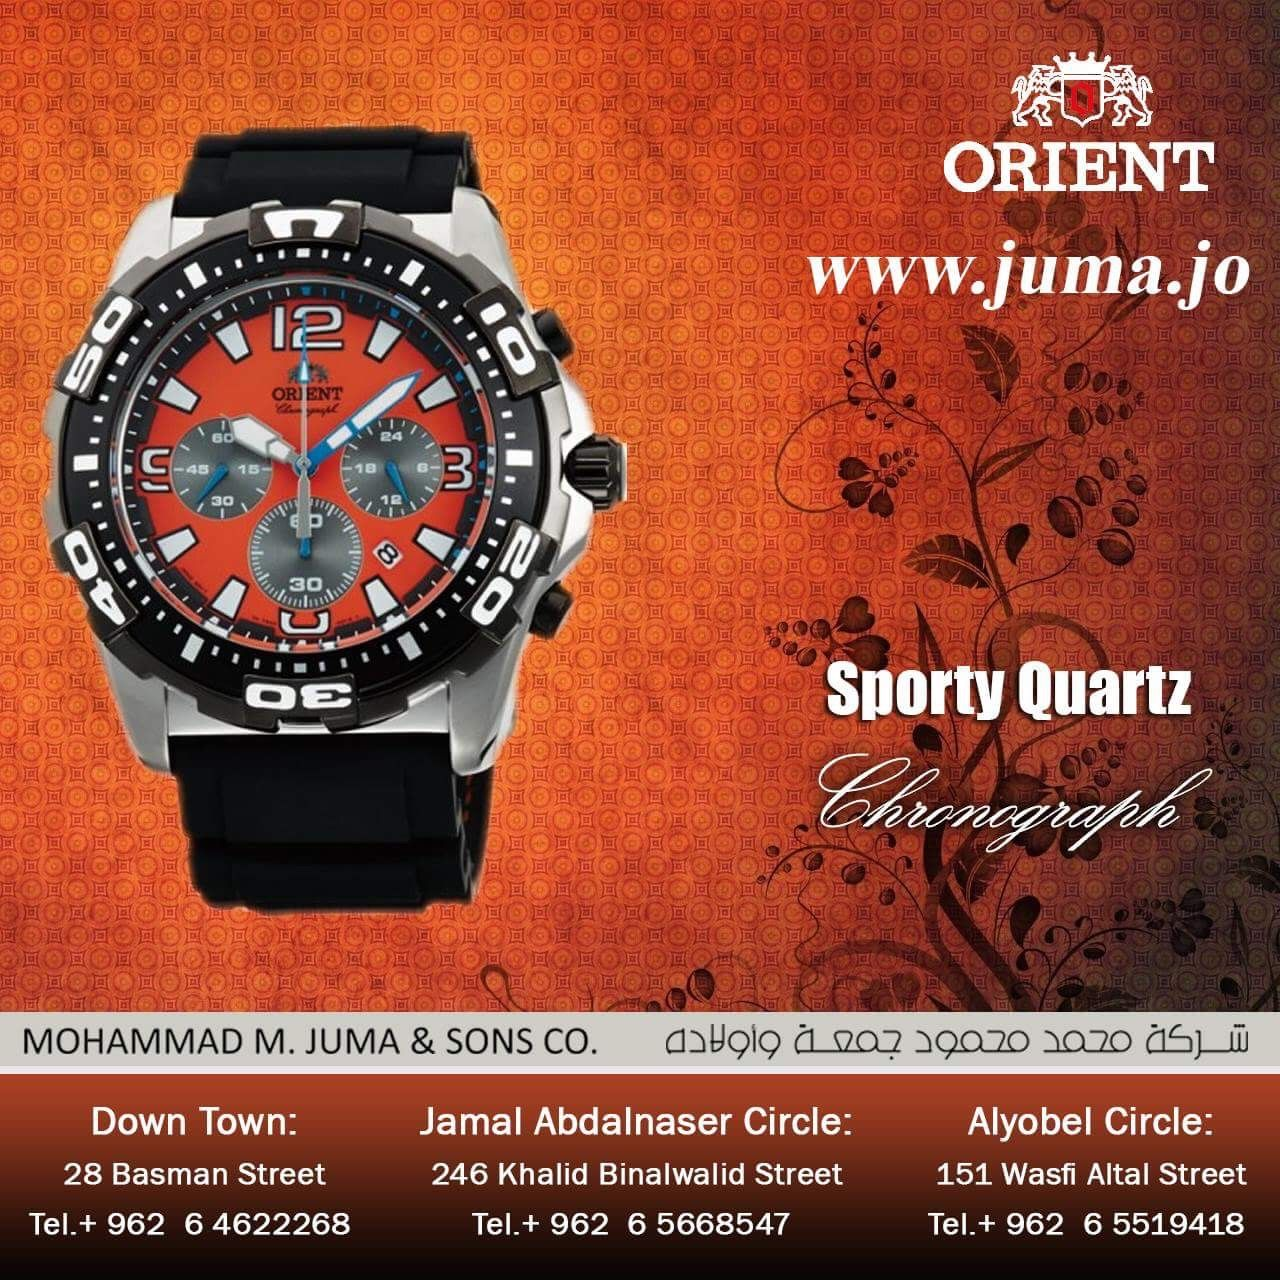 Check Out The New Arrival Of Orient Sporty Quartz Watch Orientwatch Orientwatches Wristwatch Chronograph Sport Quartz Orient Watch Quartz Quartz Watch